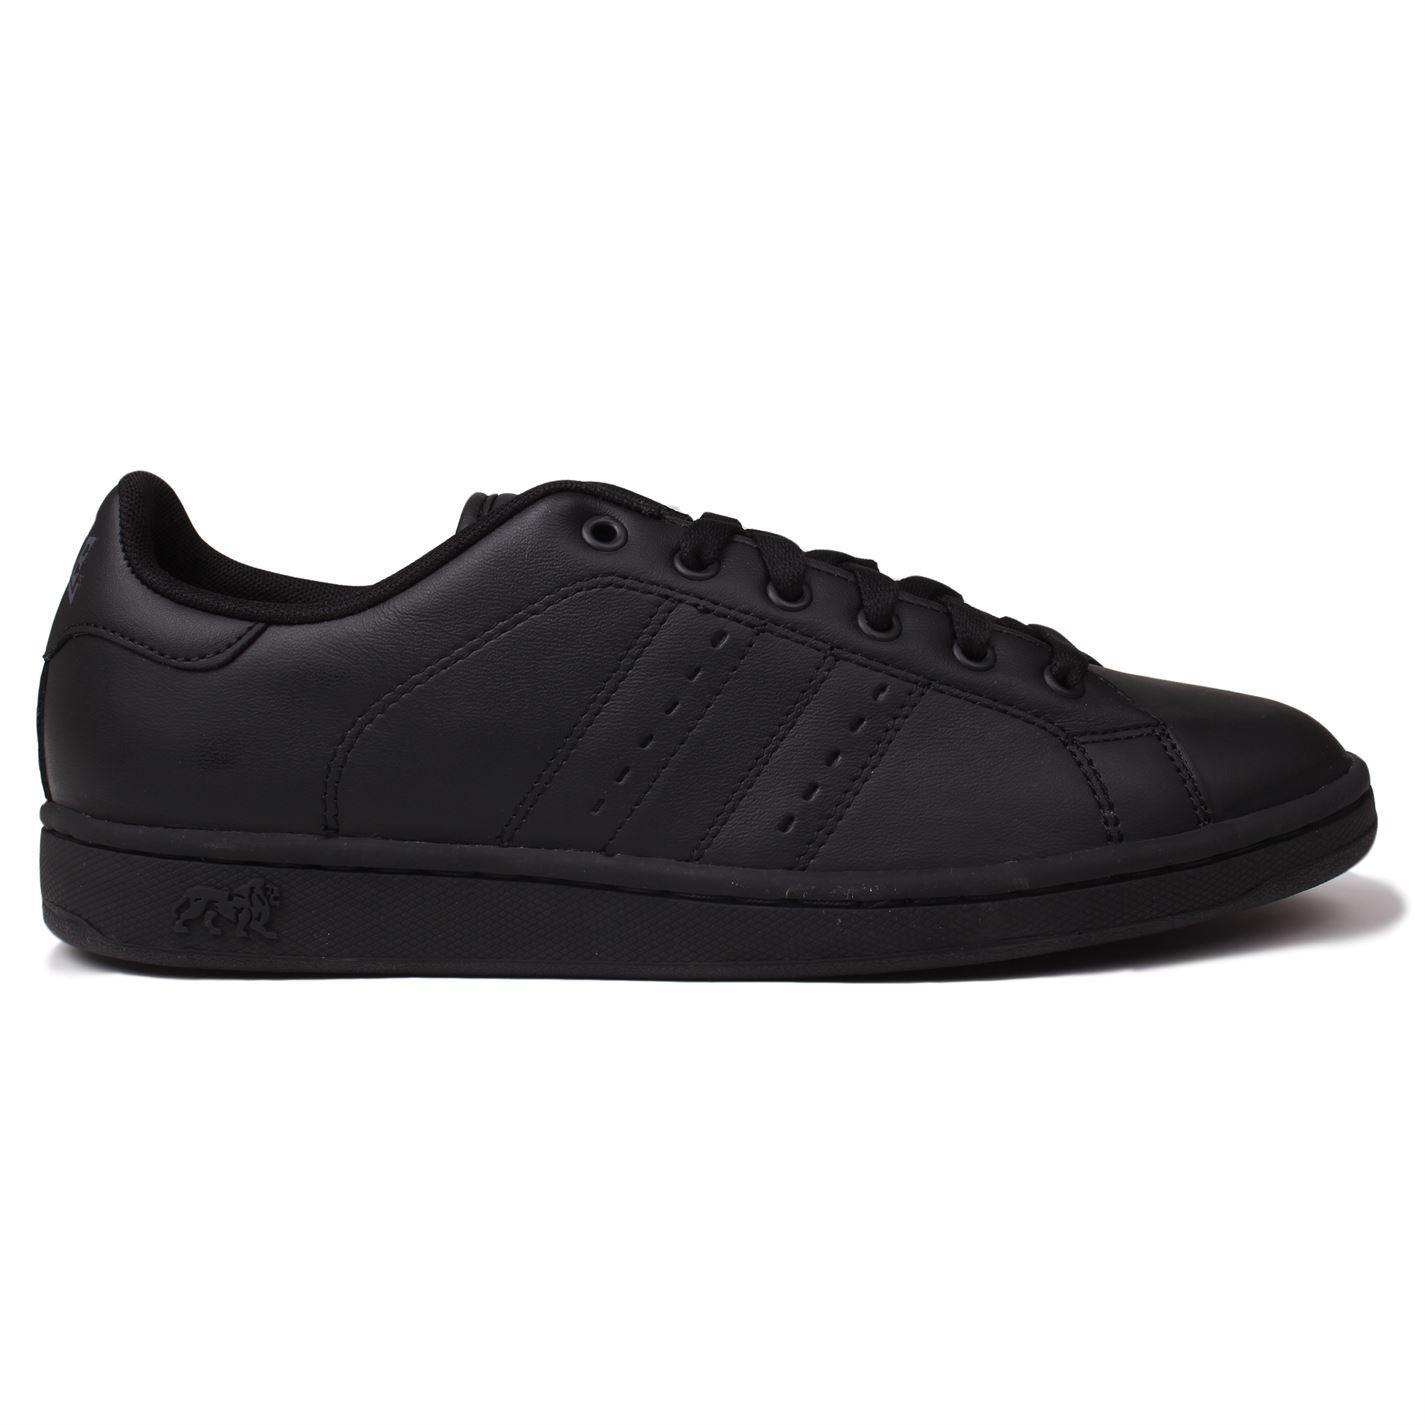 Hommes Chaussures Baskets Cuir Leyton Décontracté Lonsdale RHxtTY